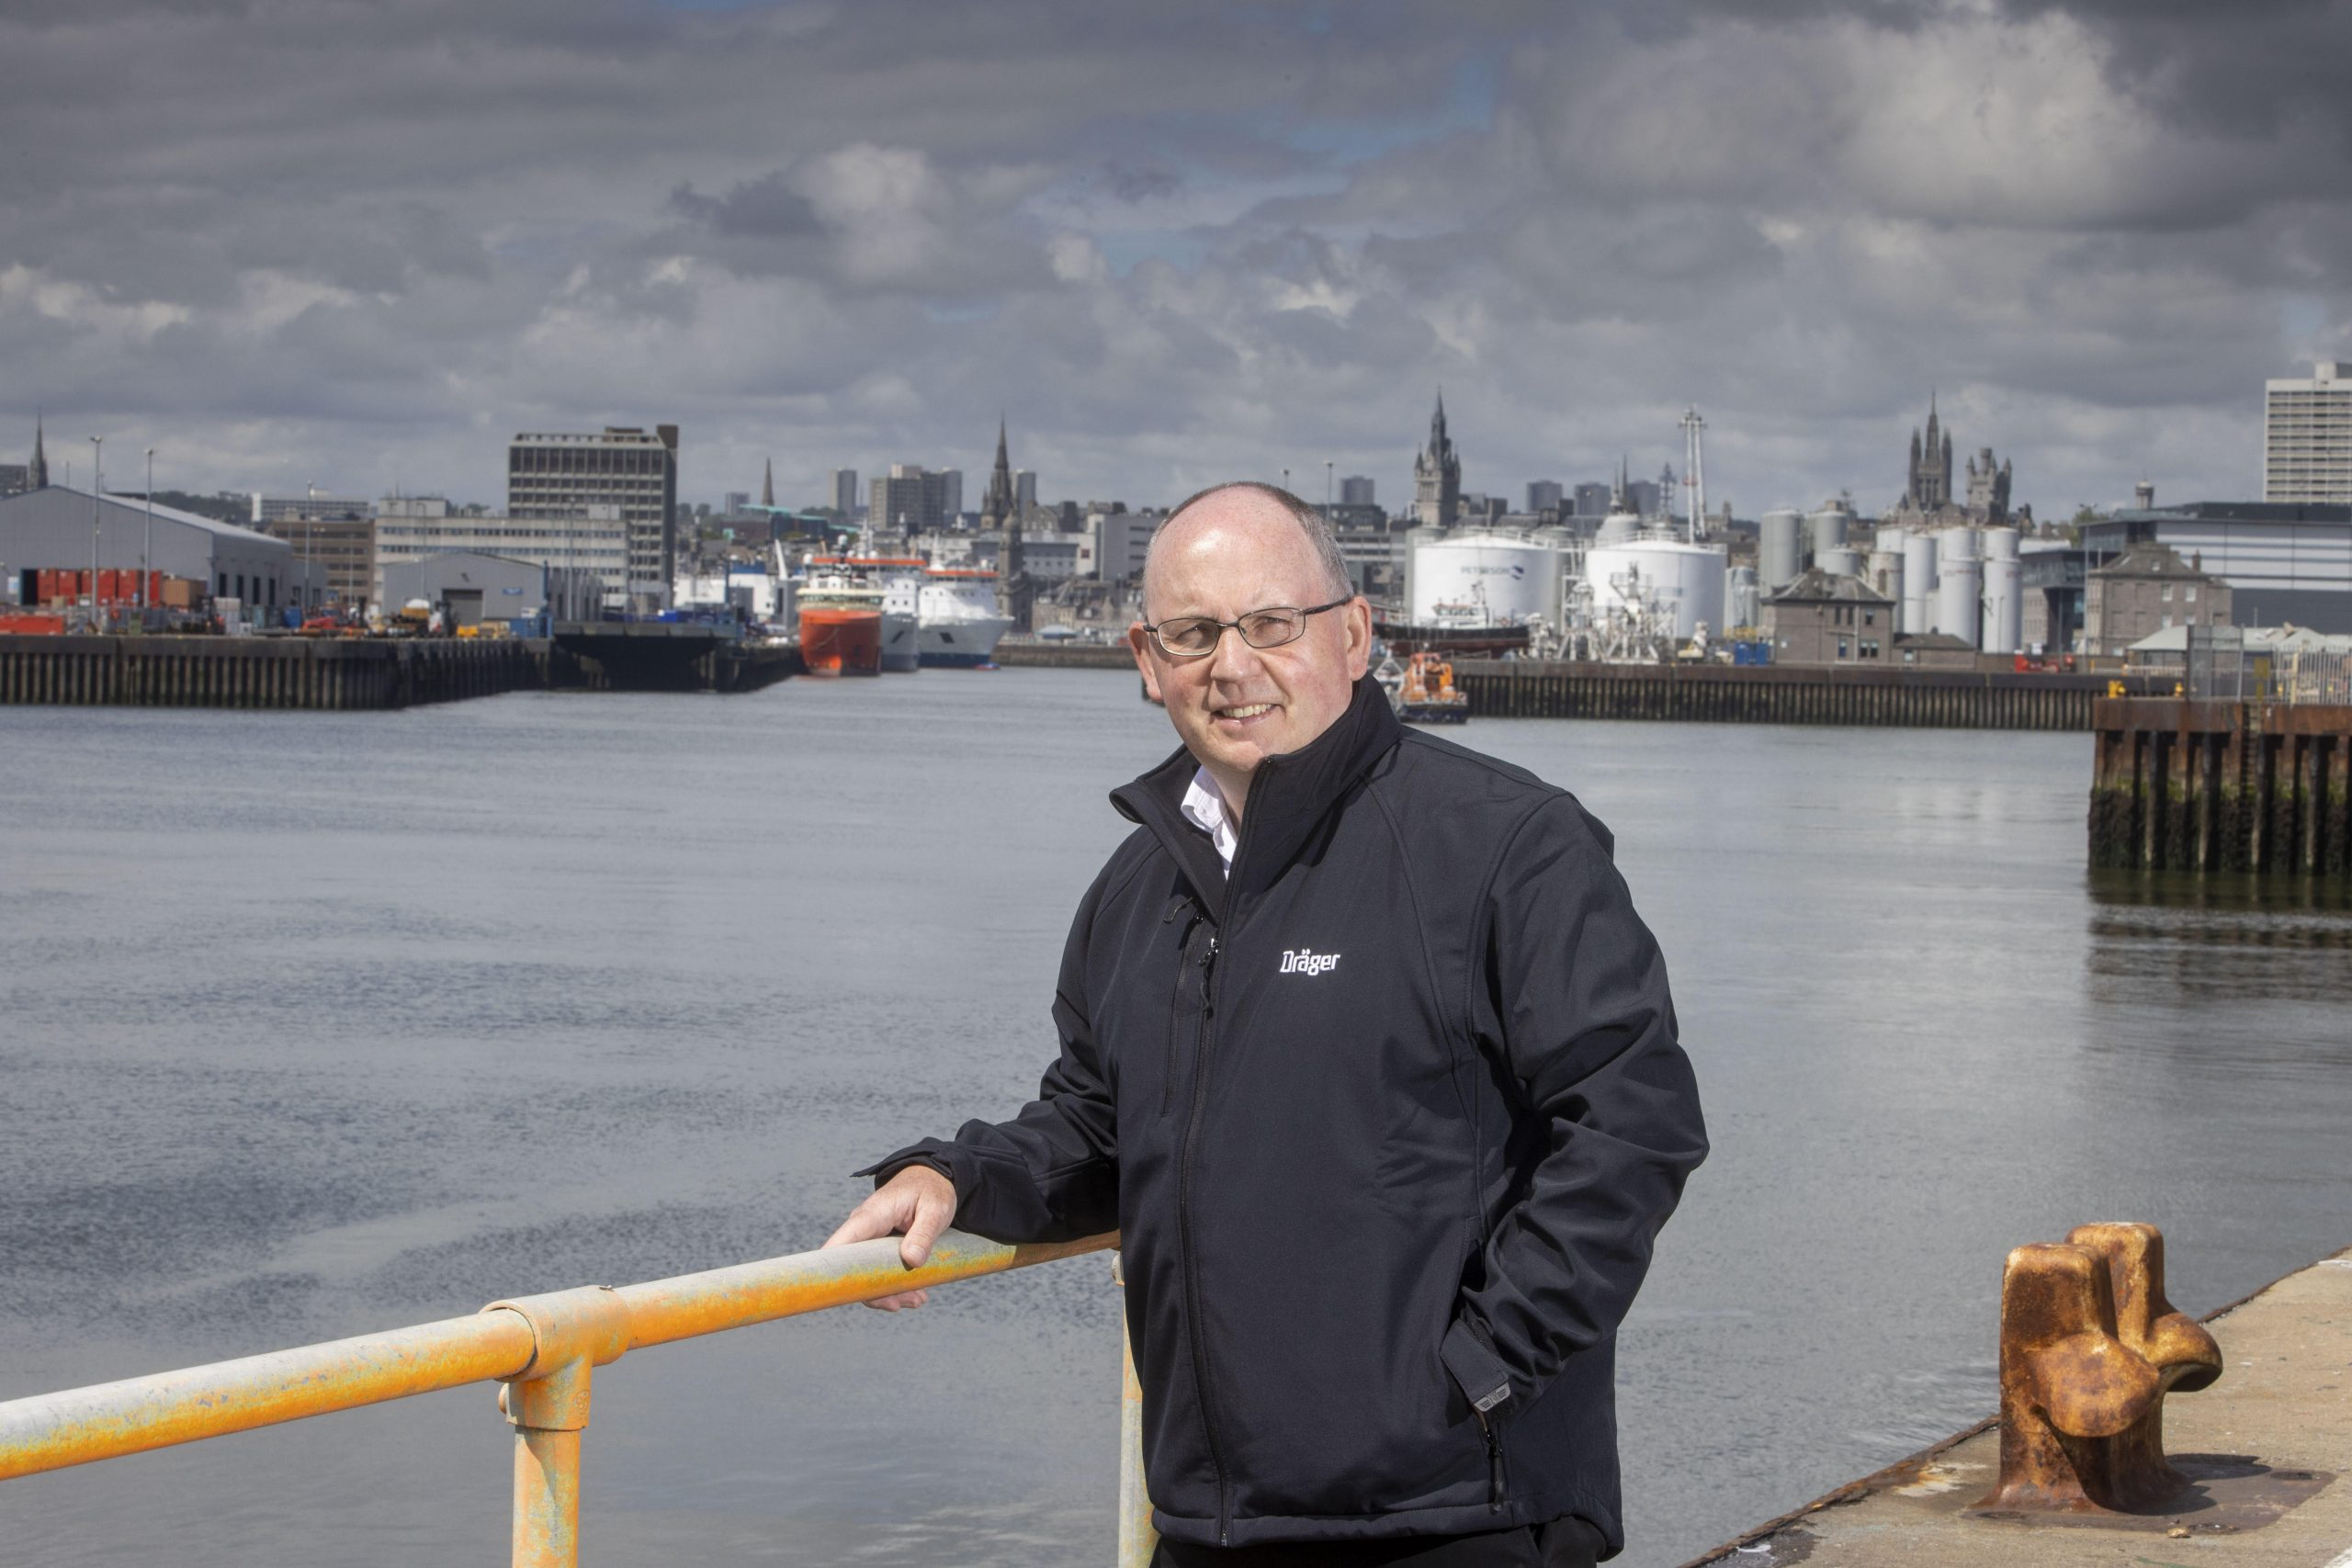 """The latest phase of investment will focus on significantly expanding the company's rental fleet of offshore safety equipment, which includes its industry-leading fire and rescue apparatus. The company's safety products are employed by many operators in the North Sea, and its Aberdeen base is home to the UK's largest direct to customer rental fleet of Dräger equipment with over 1600 items. The company has also announced the appointment of David Donaldson to head up its Marine and Offshore UK office, based in Aberdeen. Twenty five staff are based at the Aberdeen office, which in addition to its rental fleet, is also home to an international offshore safety training academy and state of the art service workshop. Dräger is the only safety manufacturer with a base in Aberdeen, and the firm also has premises at Grangemouth. Donaldson, who brings to the company over 30 years' experience working in the offshore, oil and gas industries, said: """"Dräger has had a presence in Aberdeen for almost ten years, and the company has weathered many challenges through this time. The ongoing investment in Aberdeen reaffirms our commitment to the local business community, as well as our staff, who have been working hard to maintain our customers' critical safety operations throughout lockdown."""" As well as continuing to service offshore equipment such as rigs throughout lockdown, Dräger staff have also adapted safety training courses to be delivered online to enable its customers to continue operationally-critical work during the pandemic. The adoption of new technology has resulted in Dräger Marine and Offshore winning a new contract to install the largest wireless gas detection system ever employed by a North Sea operator. Work will commence on the project, which includes the installation of over 120 wireless gas detectors, in September, and will be fully operational by November. Donaldson concludes: """"Despite the great challenges that face the oil and gas industry as a result of COVID19, """